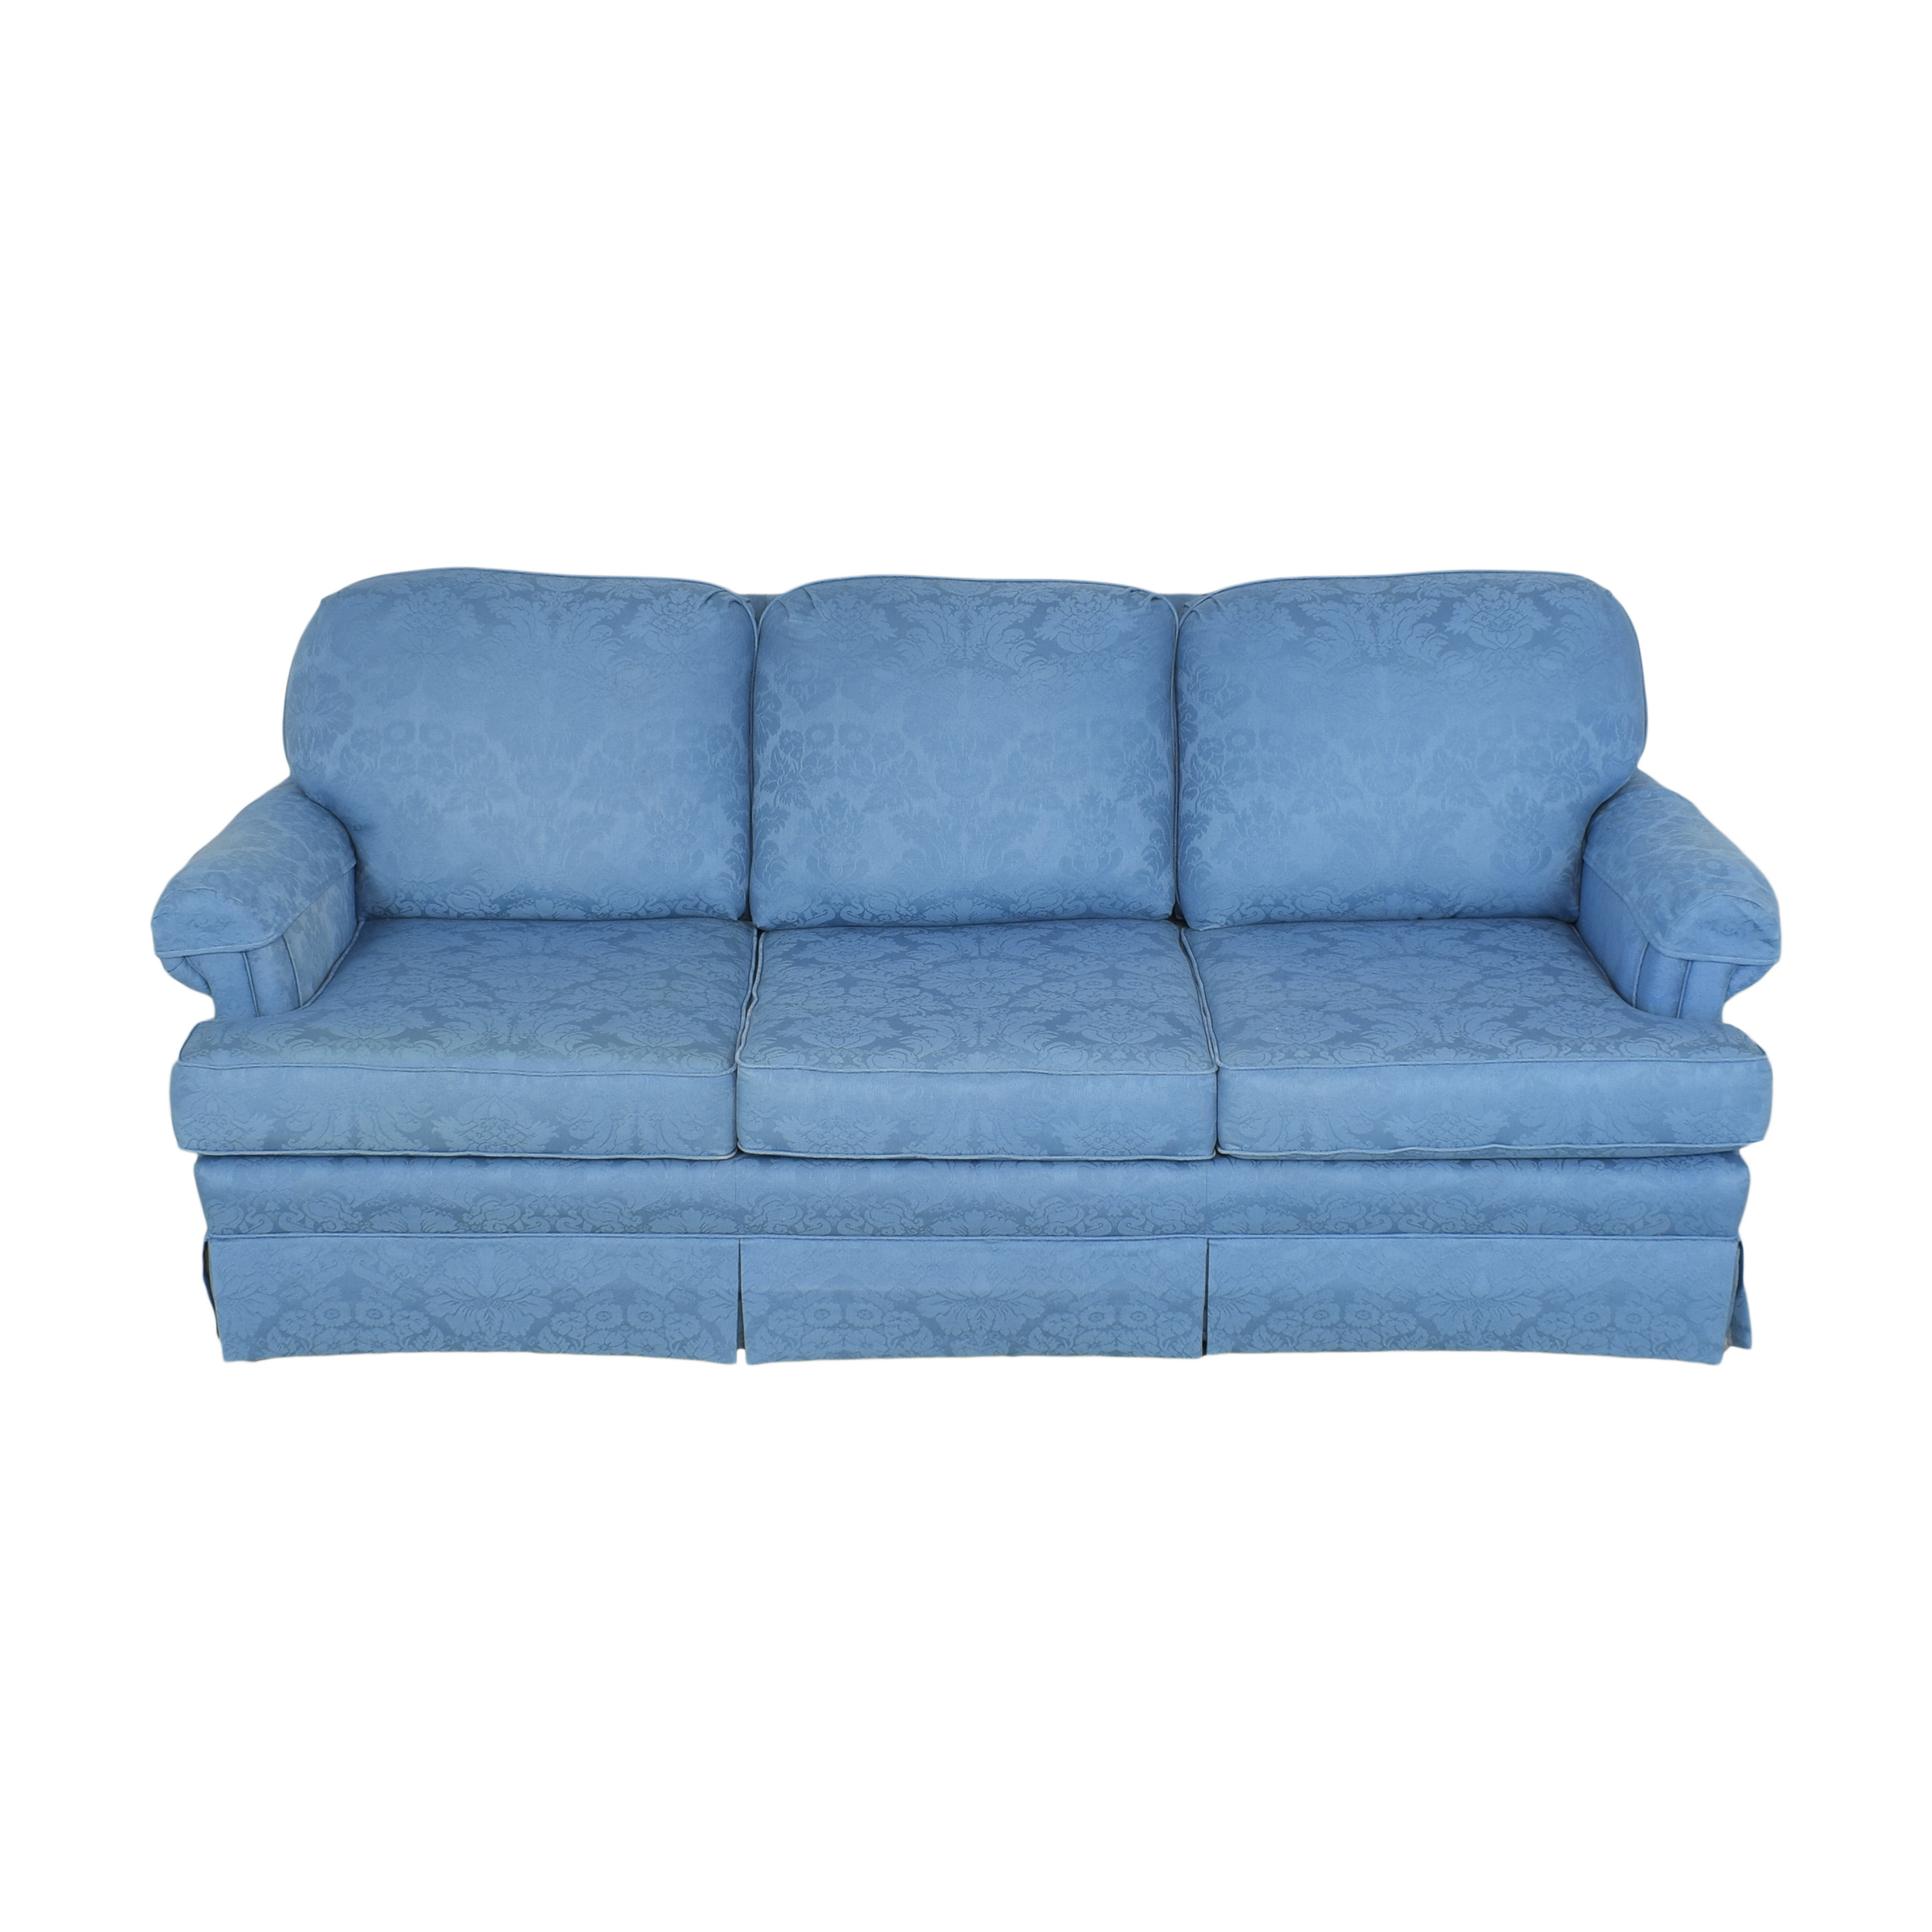 Norwalk Furniture Norwalk Three Cushion Sofa